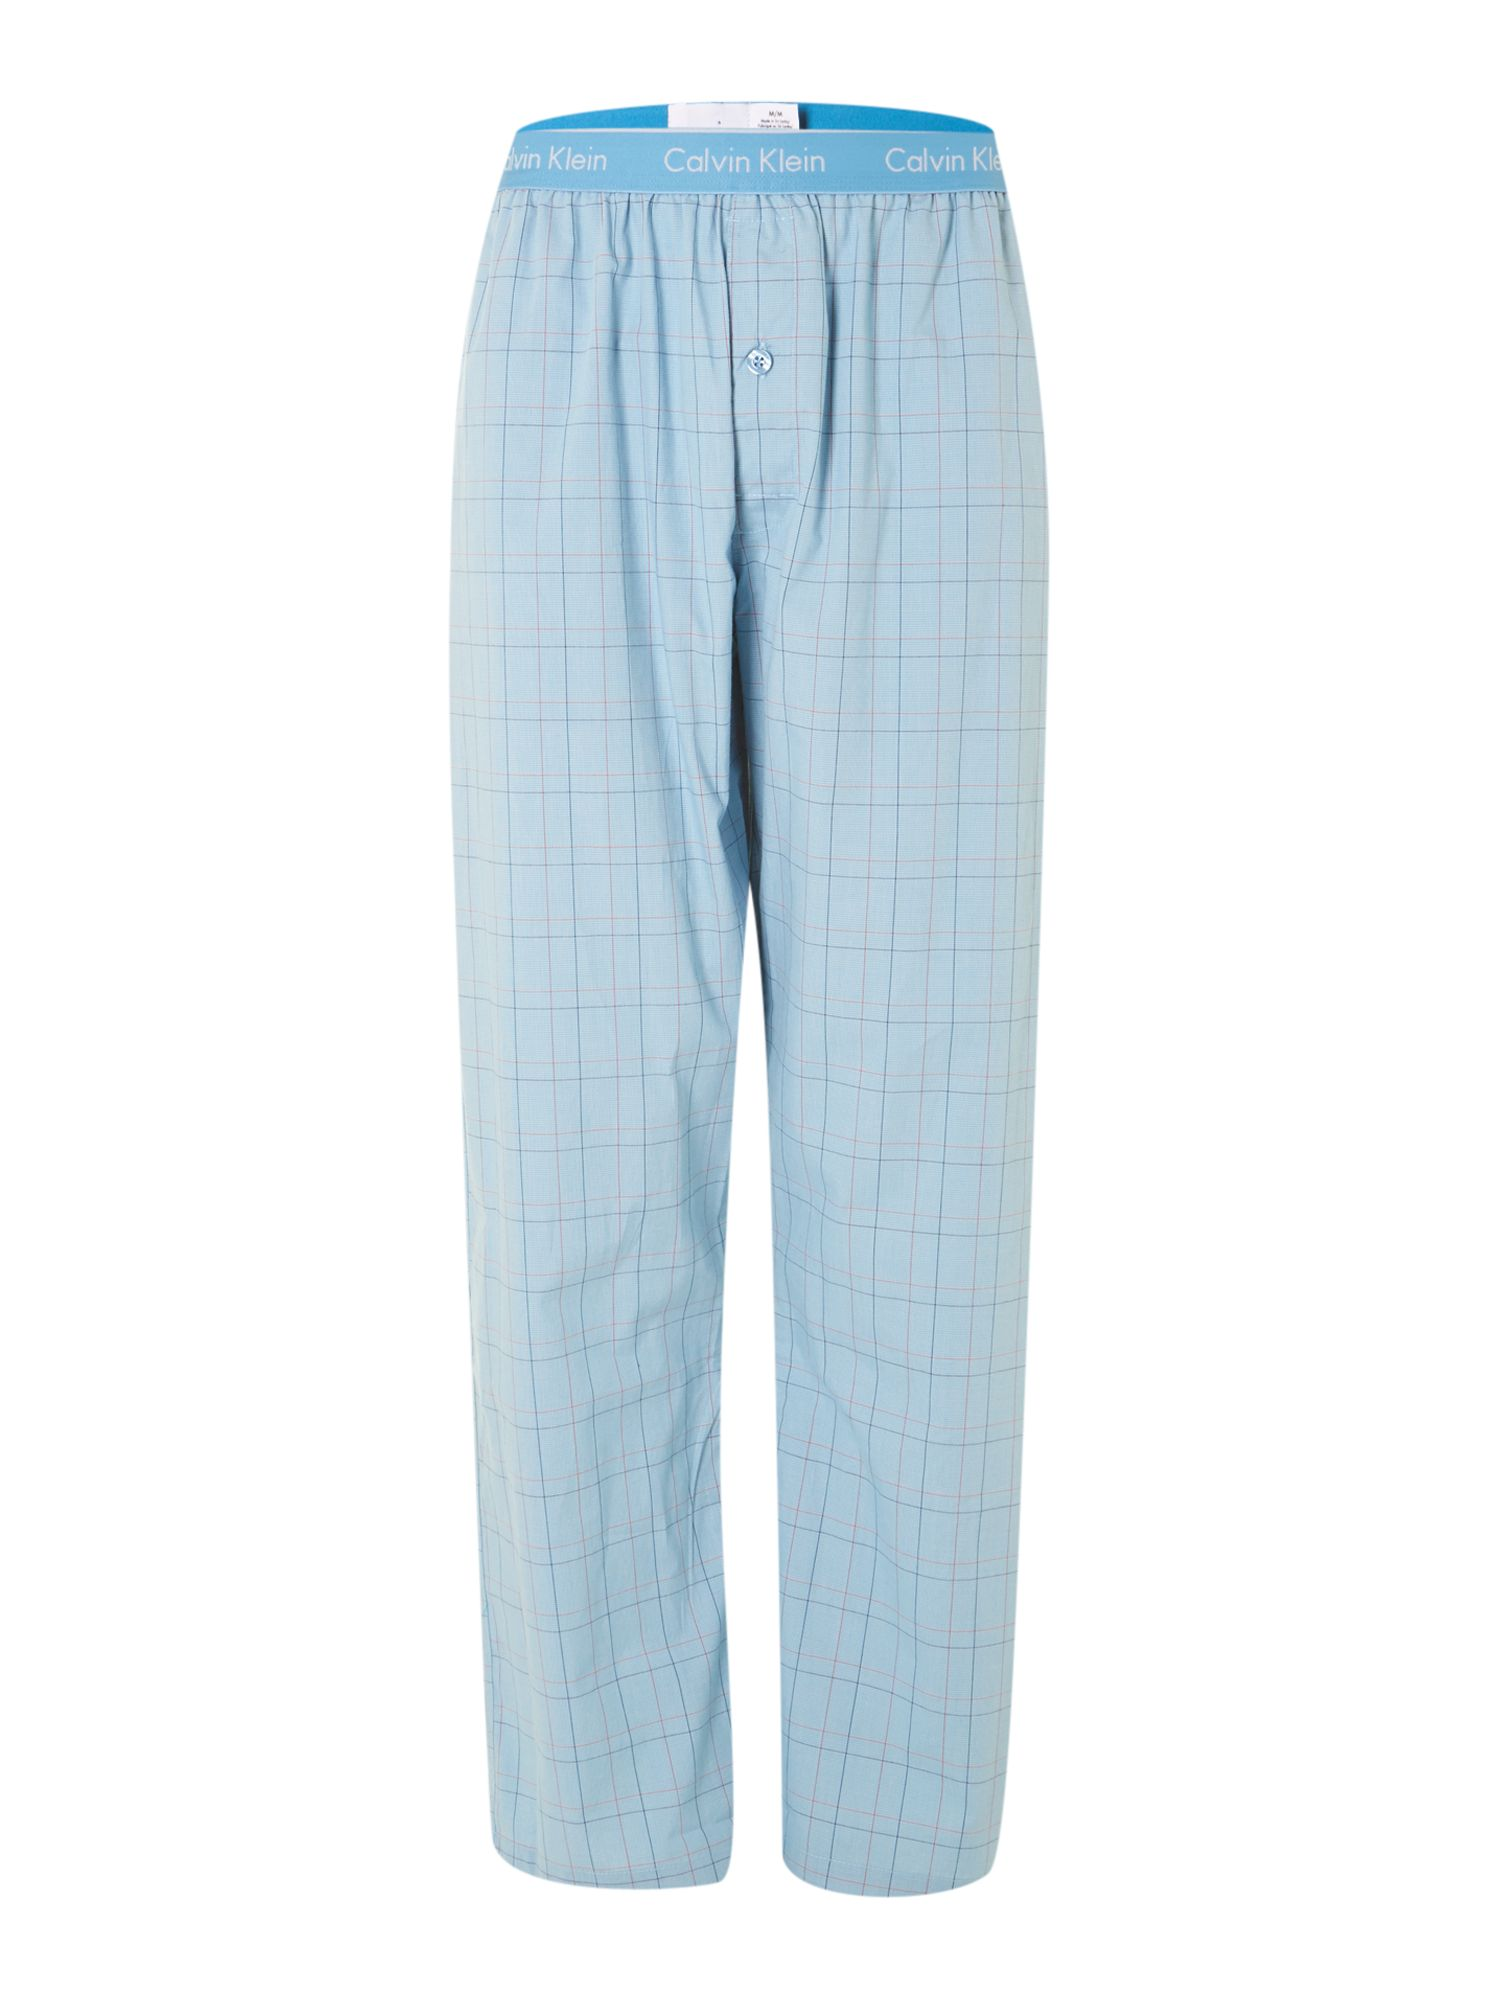 Ridge plaid pant